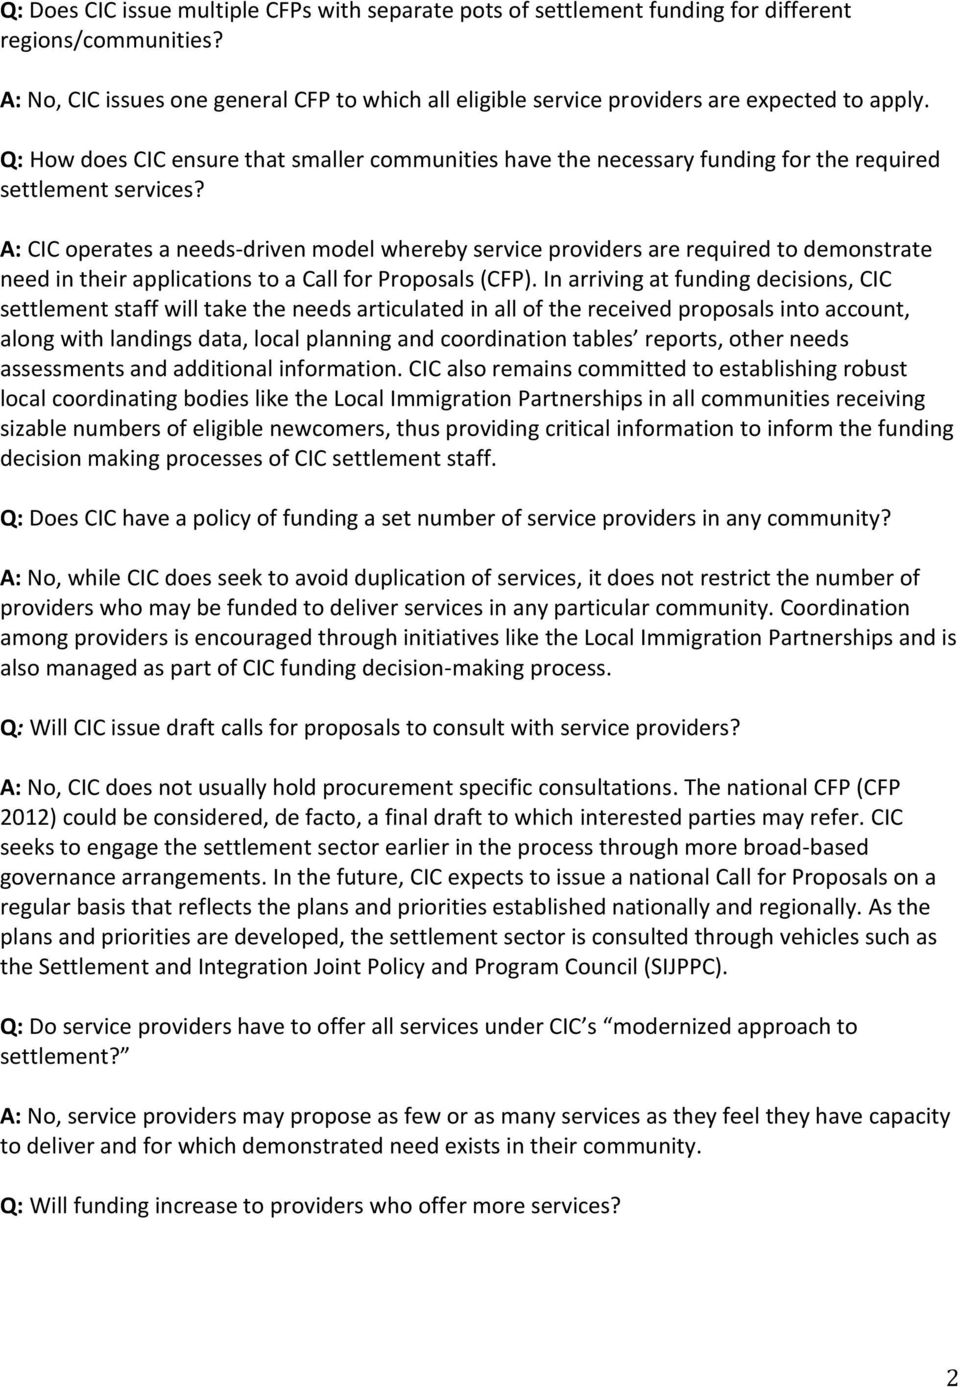 Q: How does CIC ensure that smaller communities have the necessary funding for the required settlement services?